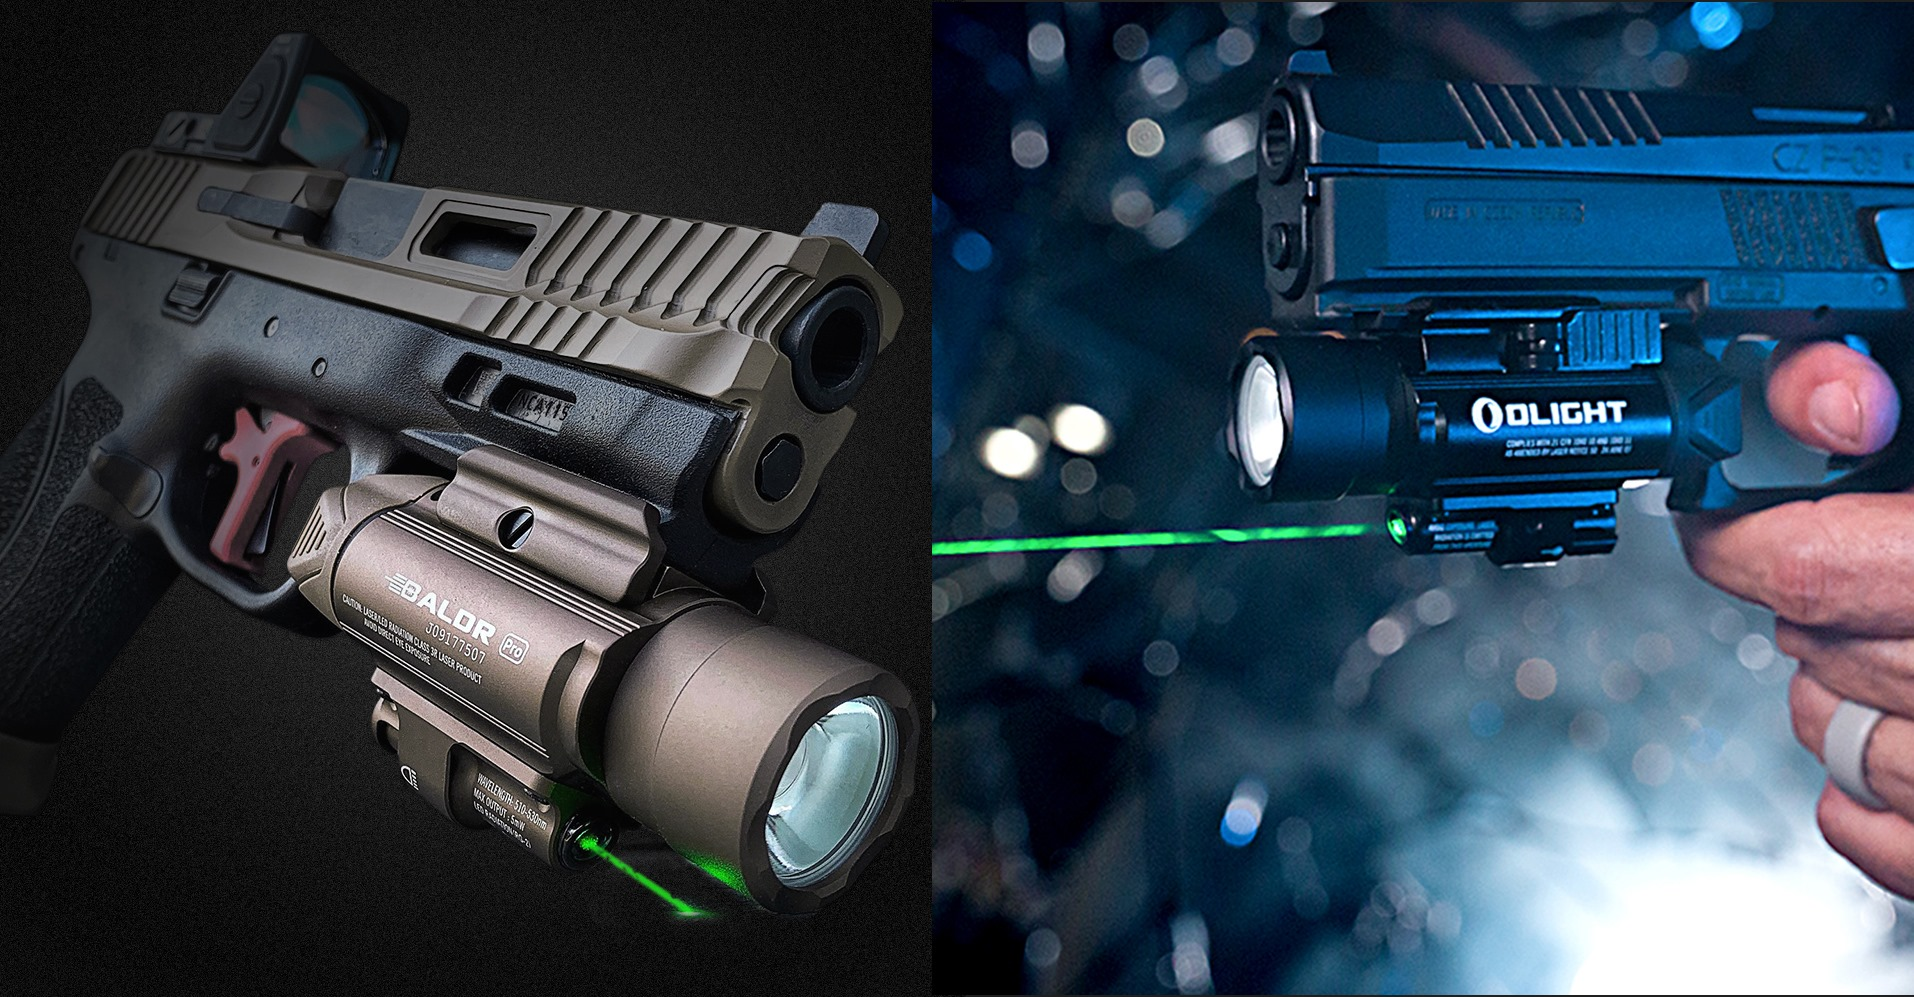 Baldr Serires, One Of The Most Popular Olight Series Tactical Lights